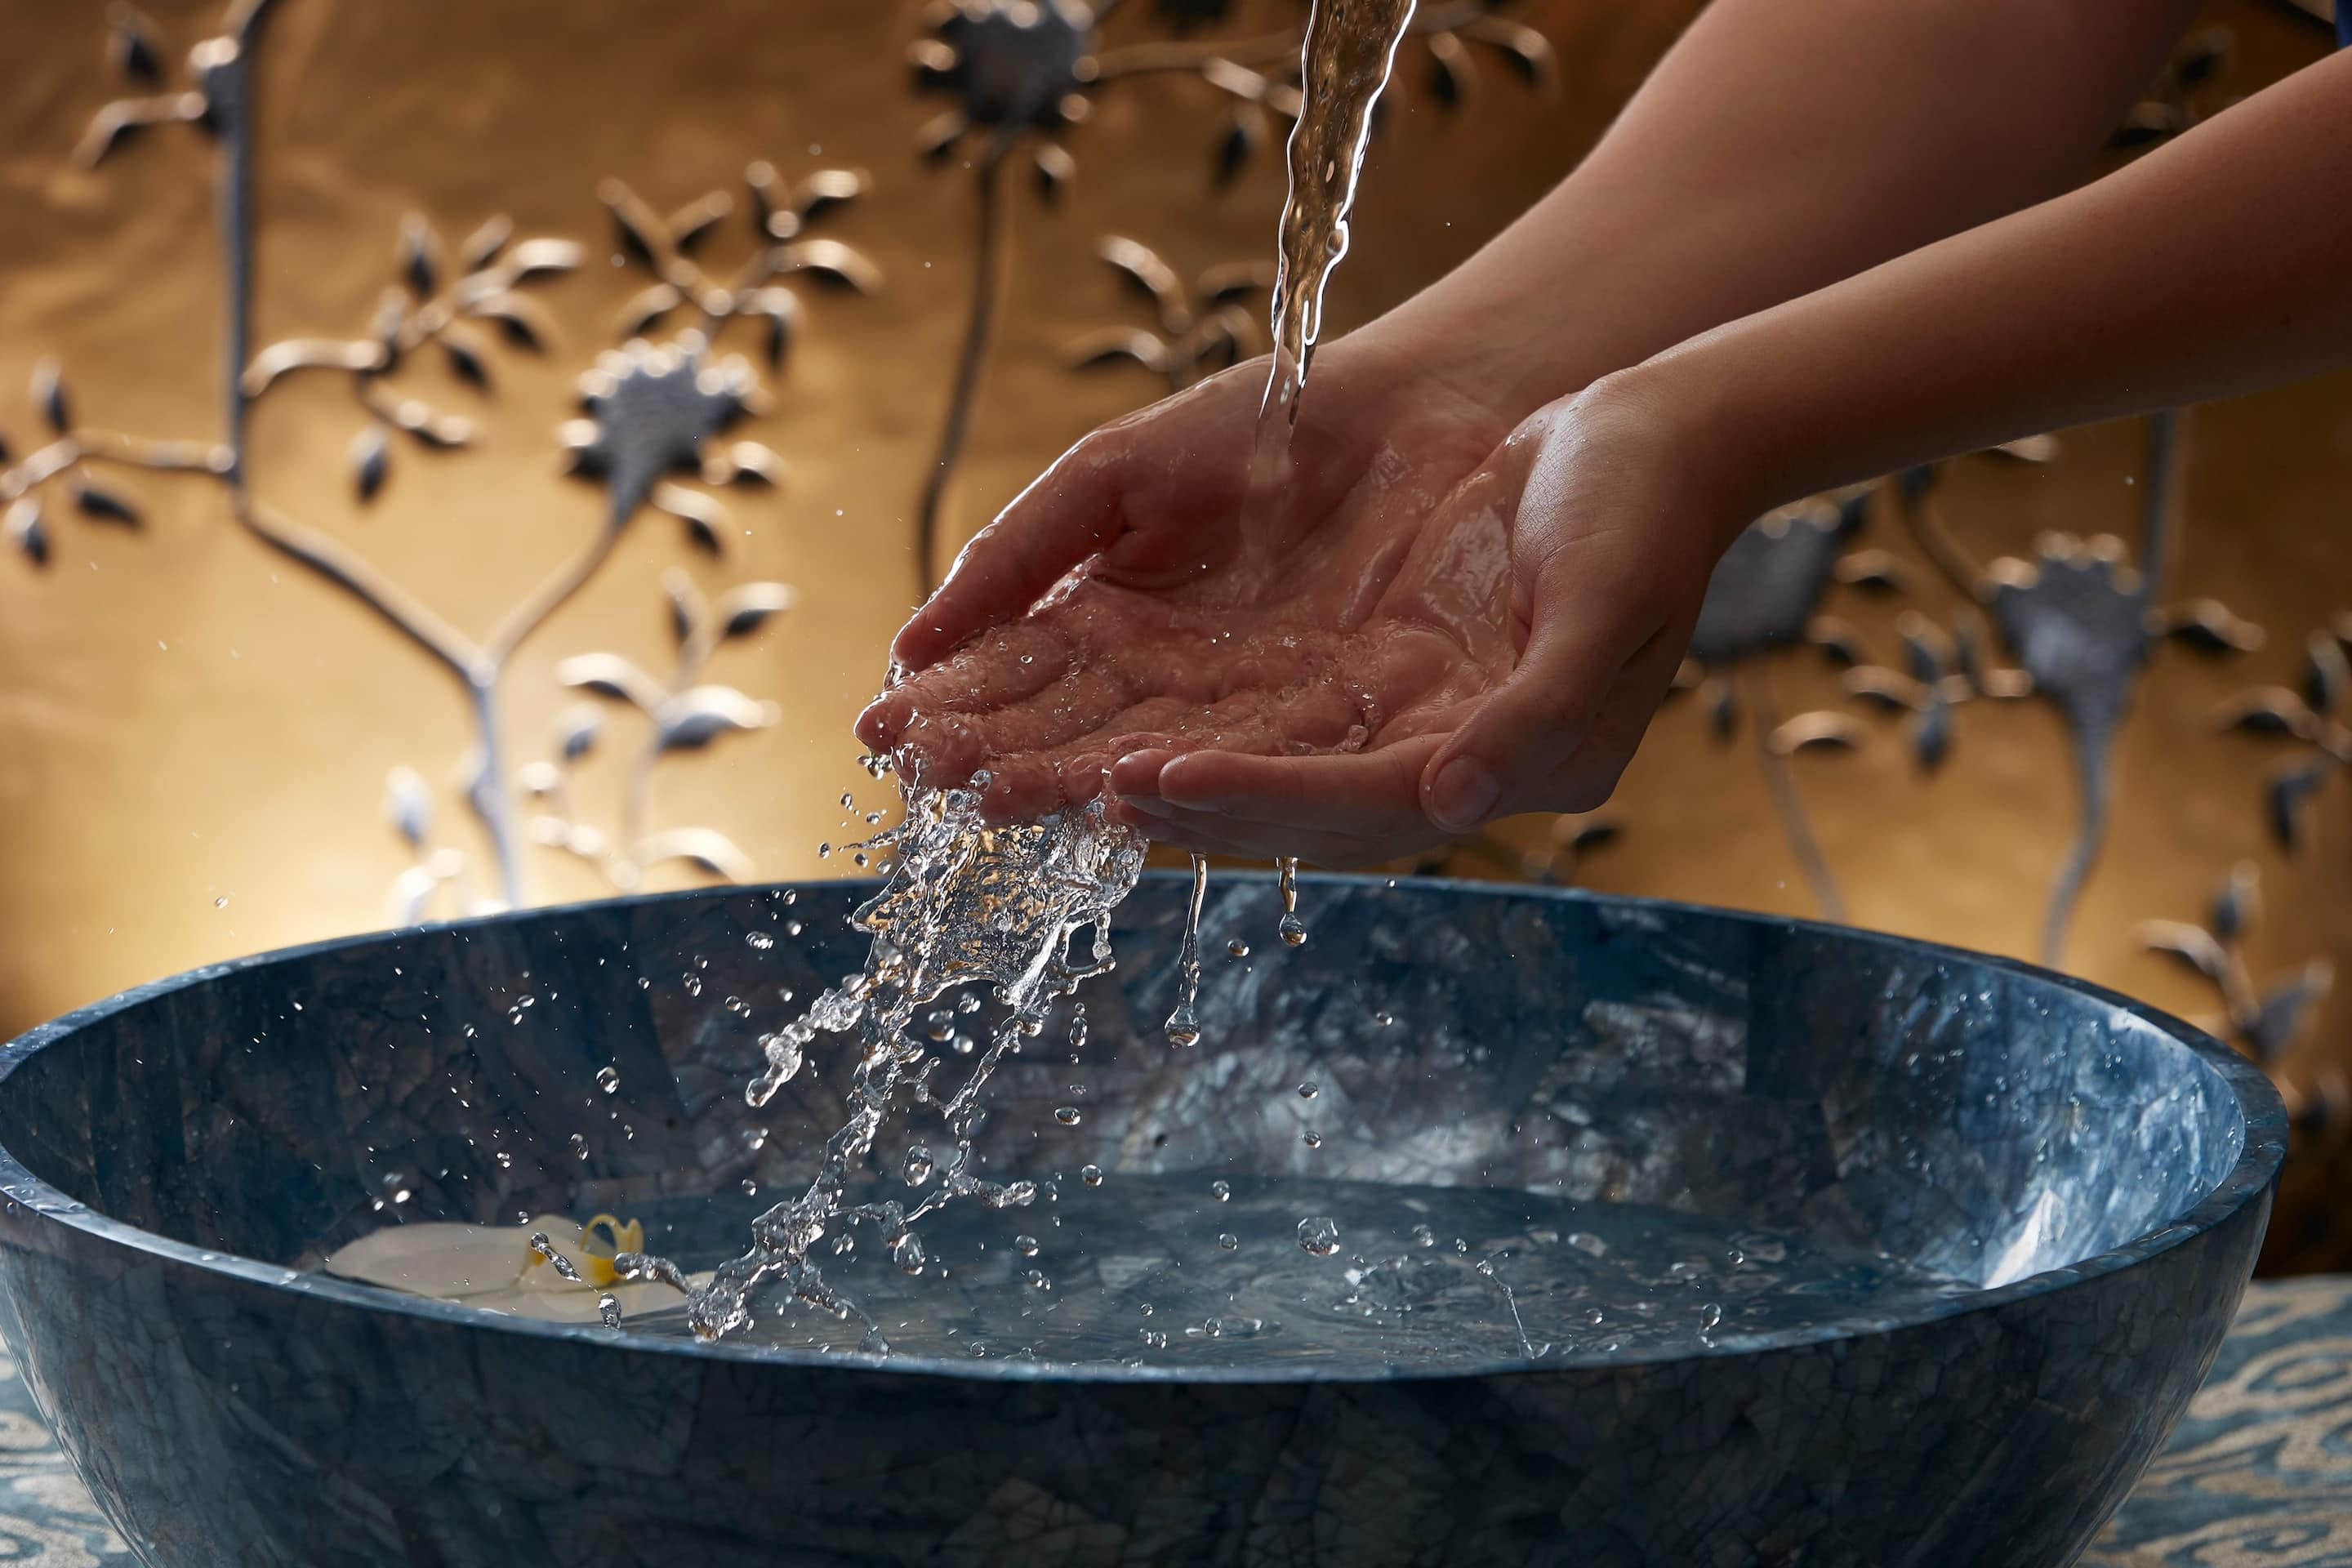 Hands in a bowl of water as part of a spa treatment at Mandarin Oriental Hyde Park